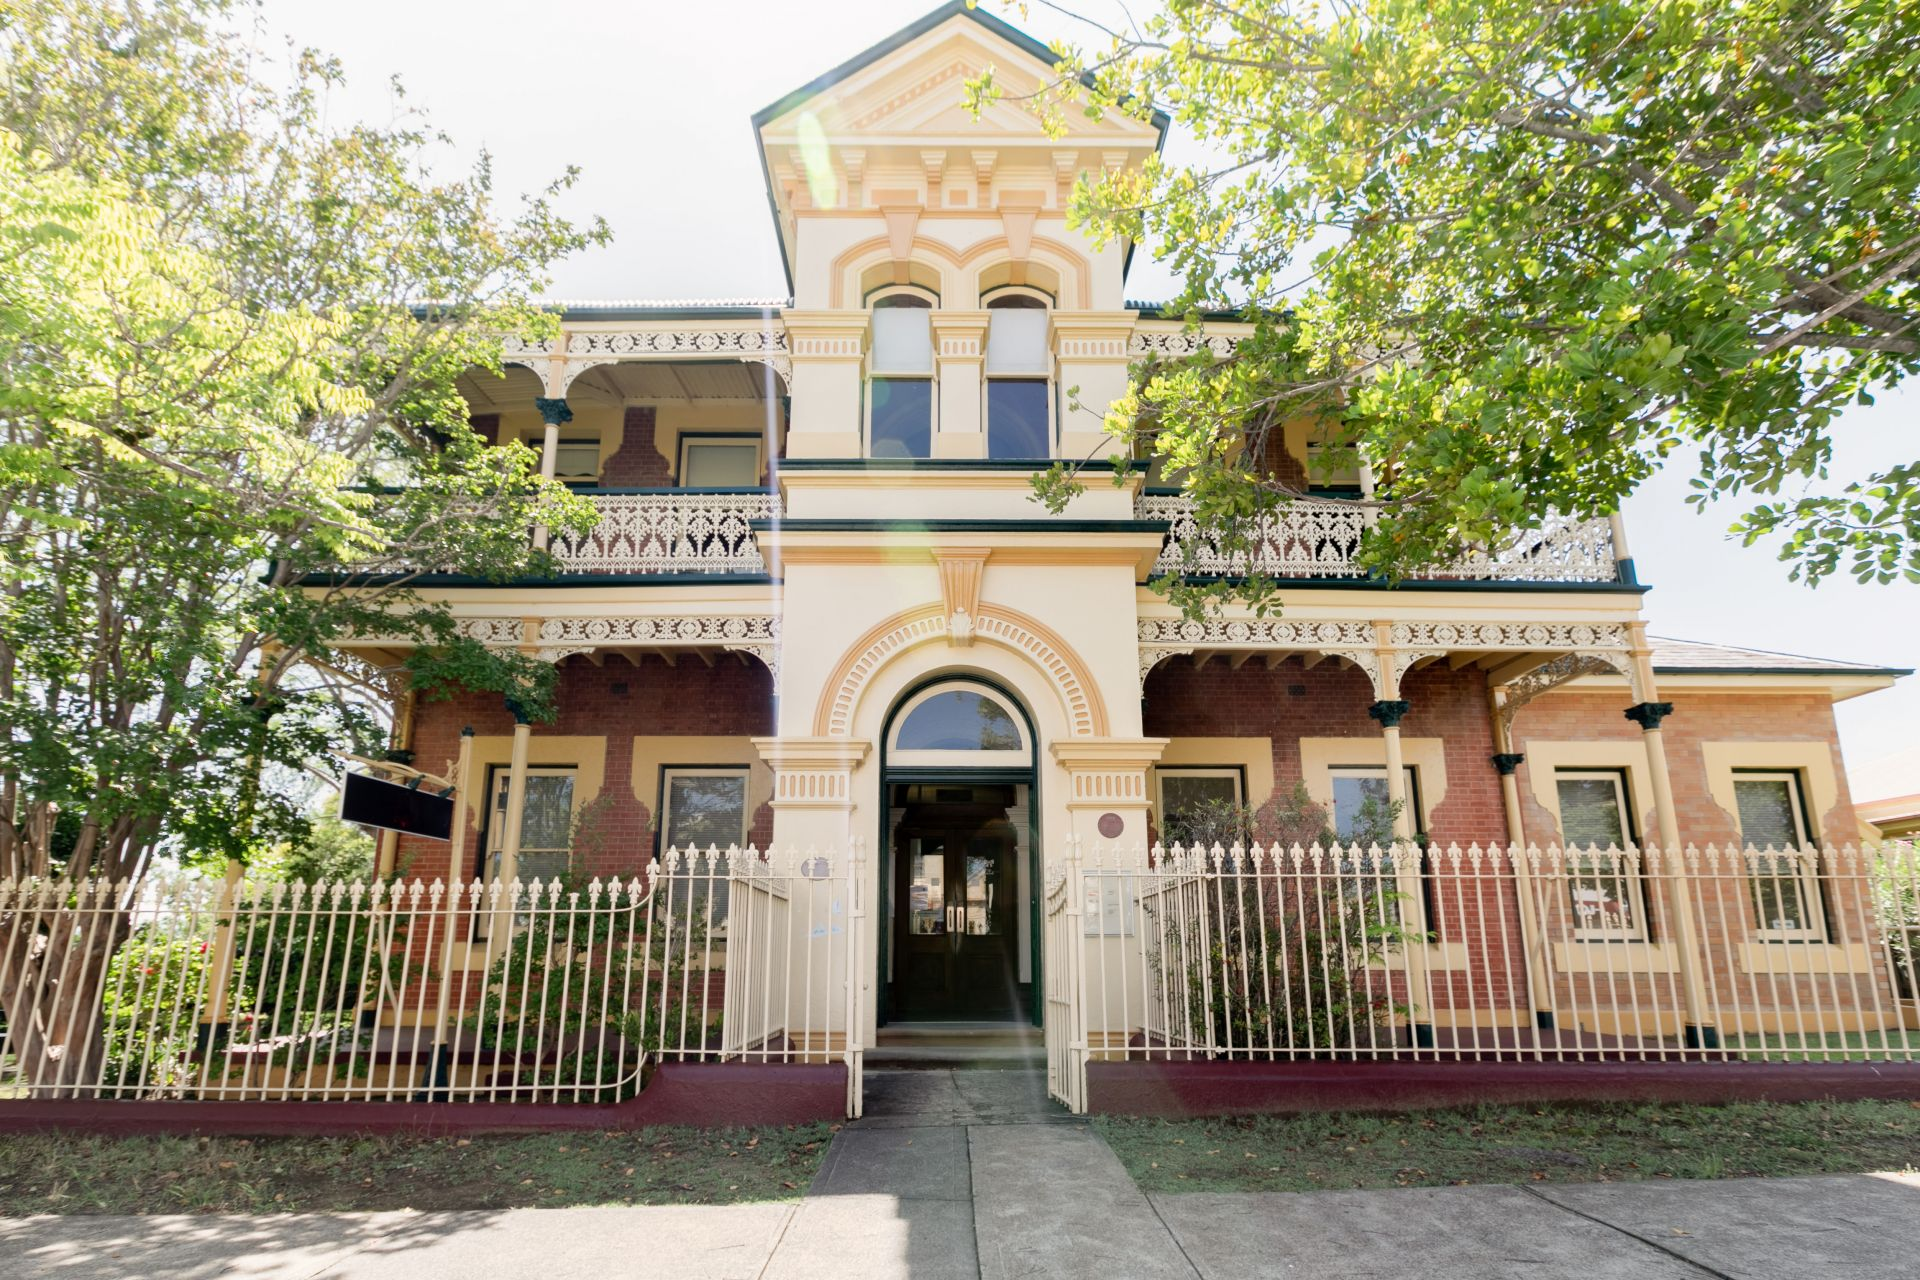 Architectural Masterpiece built circa 1884